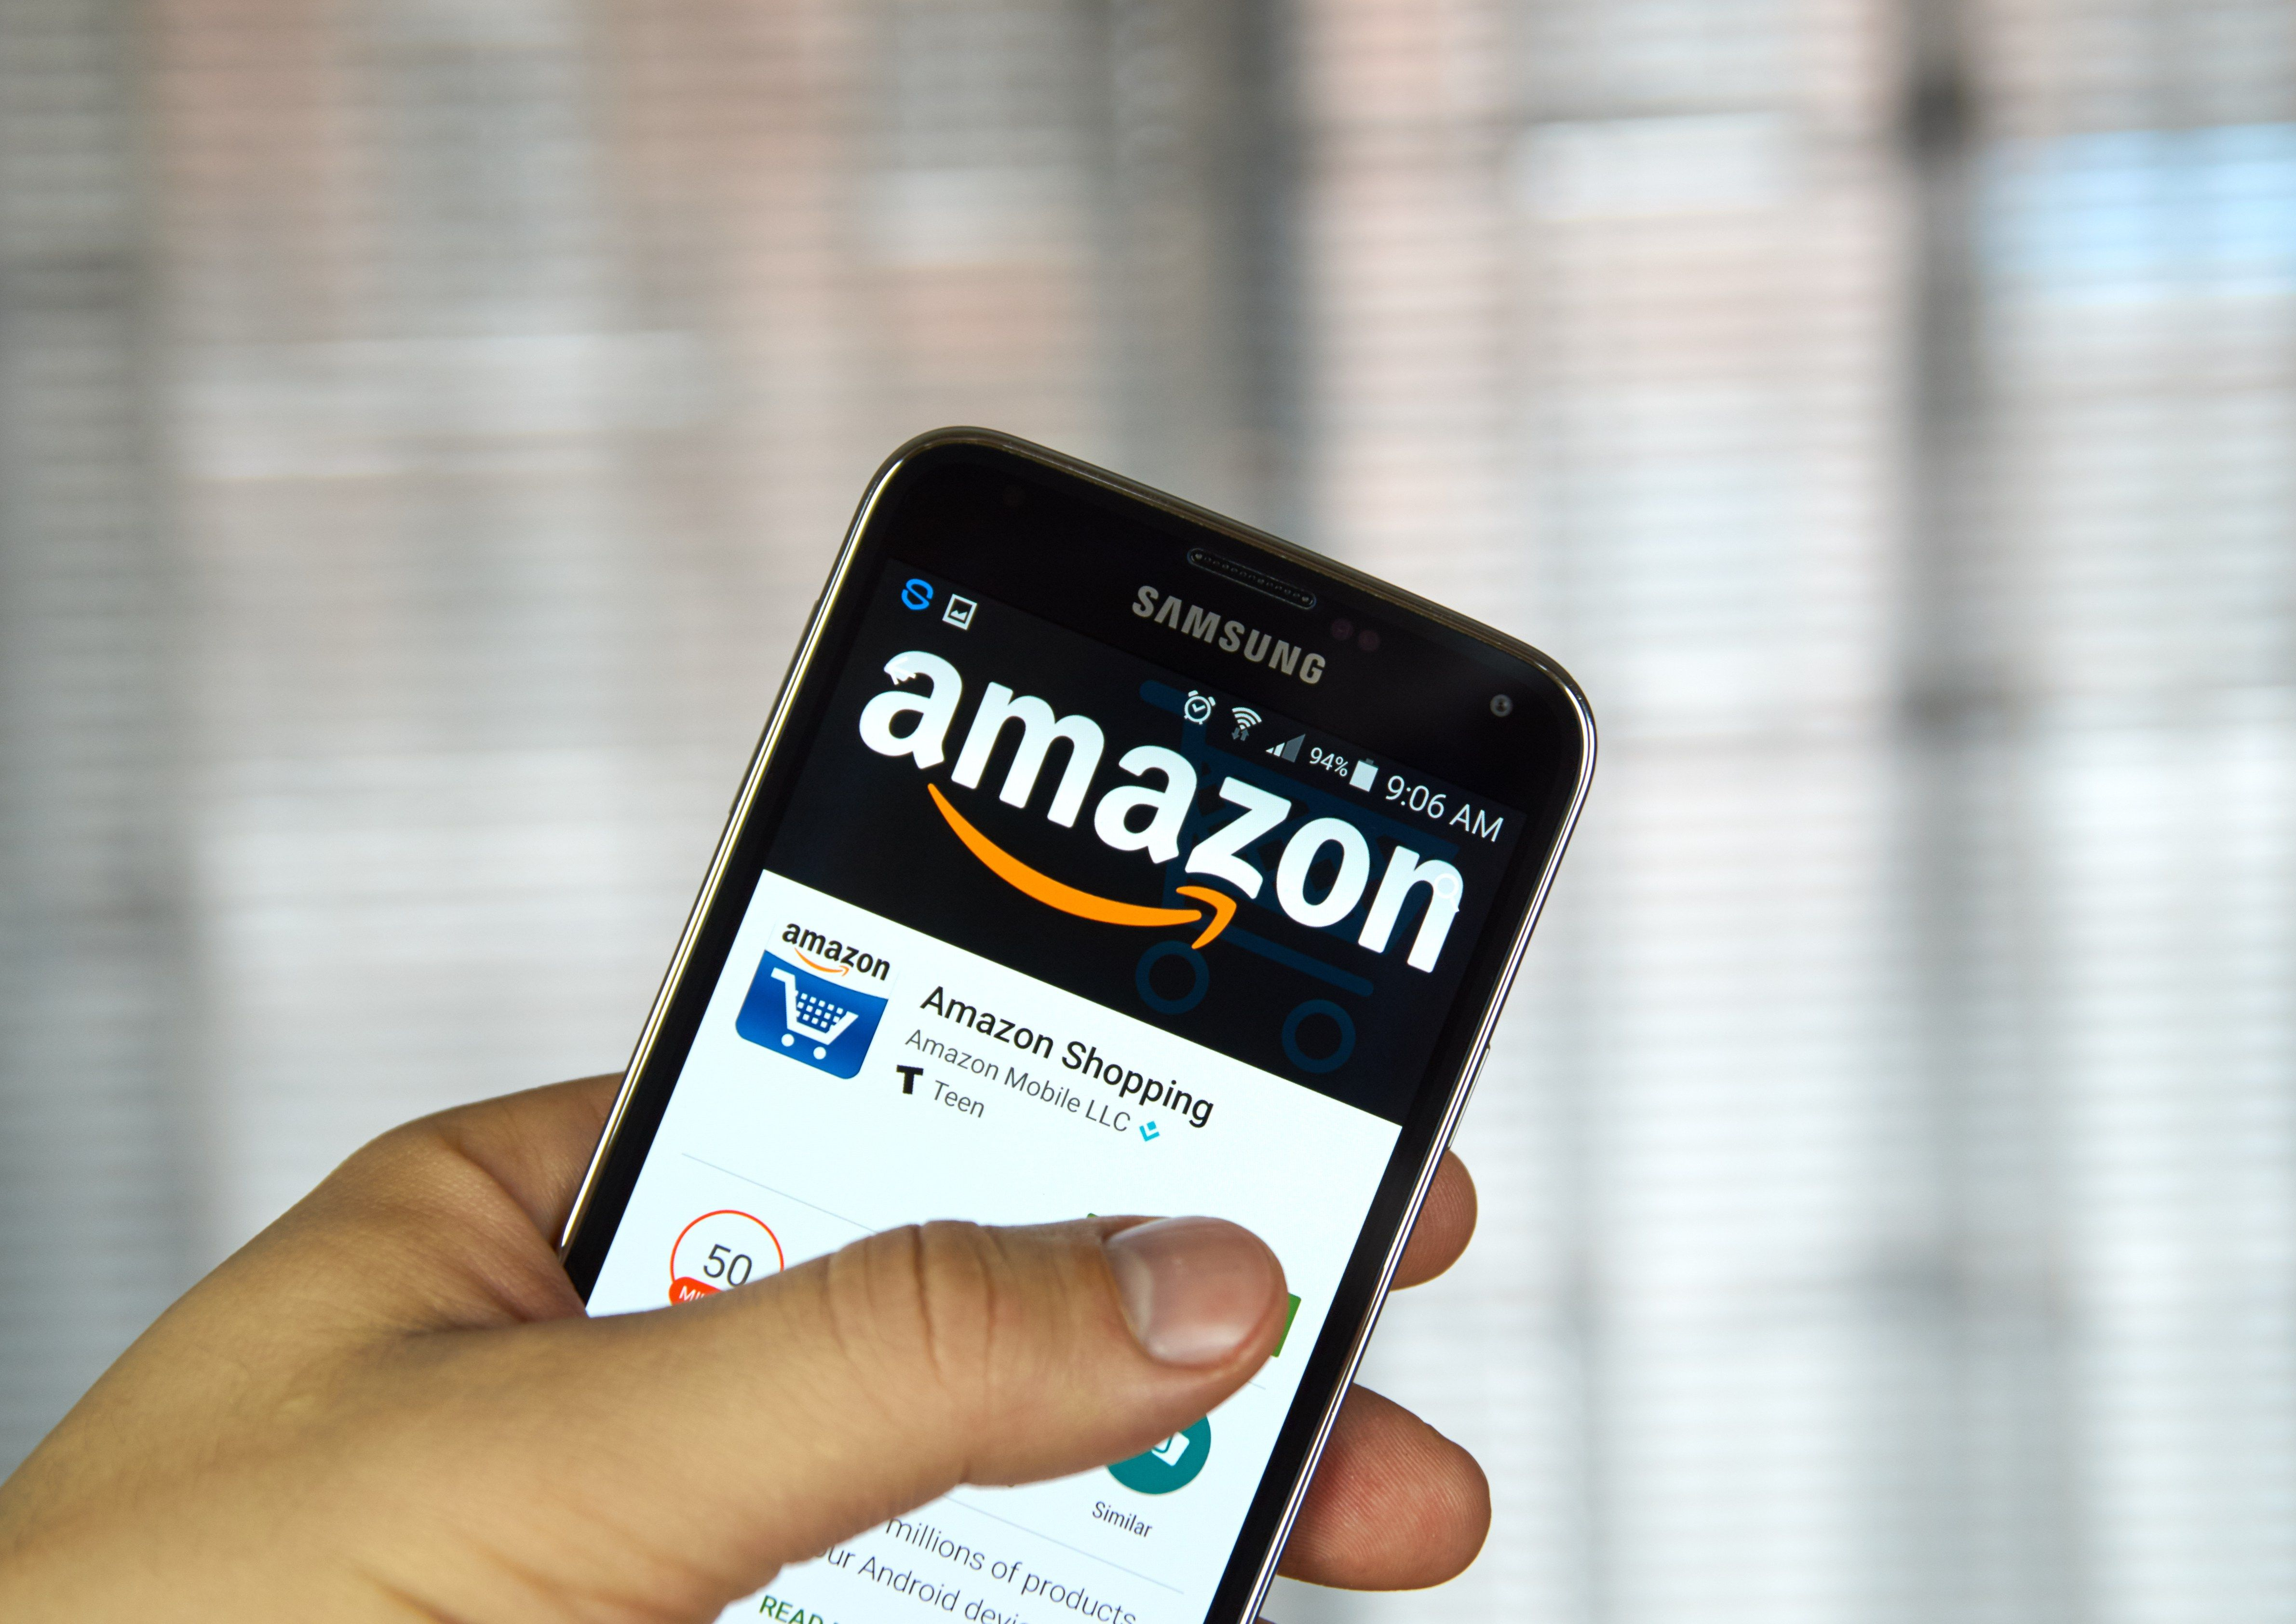 New Amazon Prime Benefit Up To 50 Percent Off Android Phones